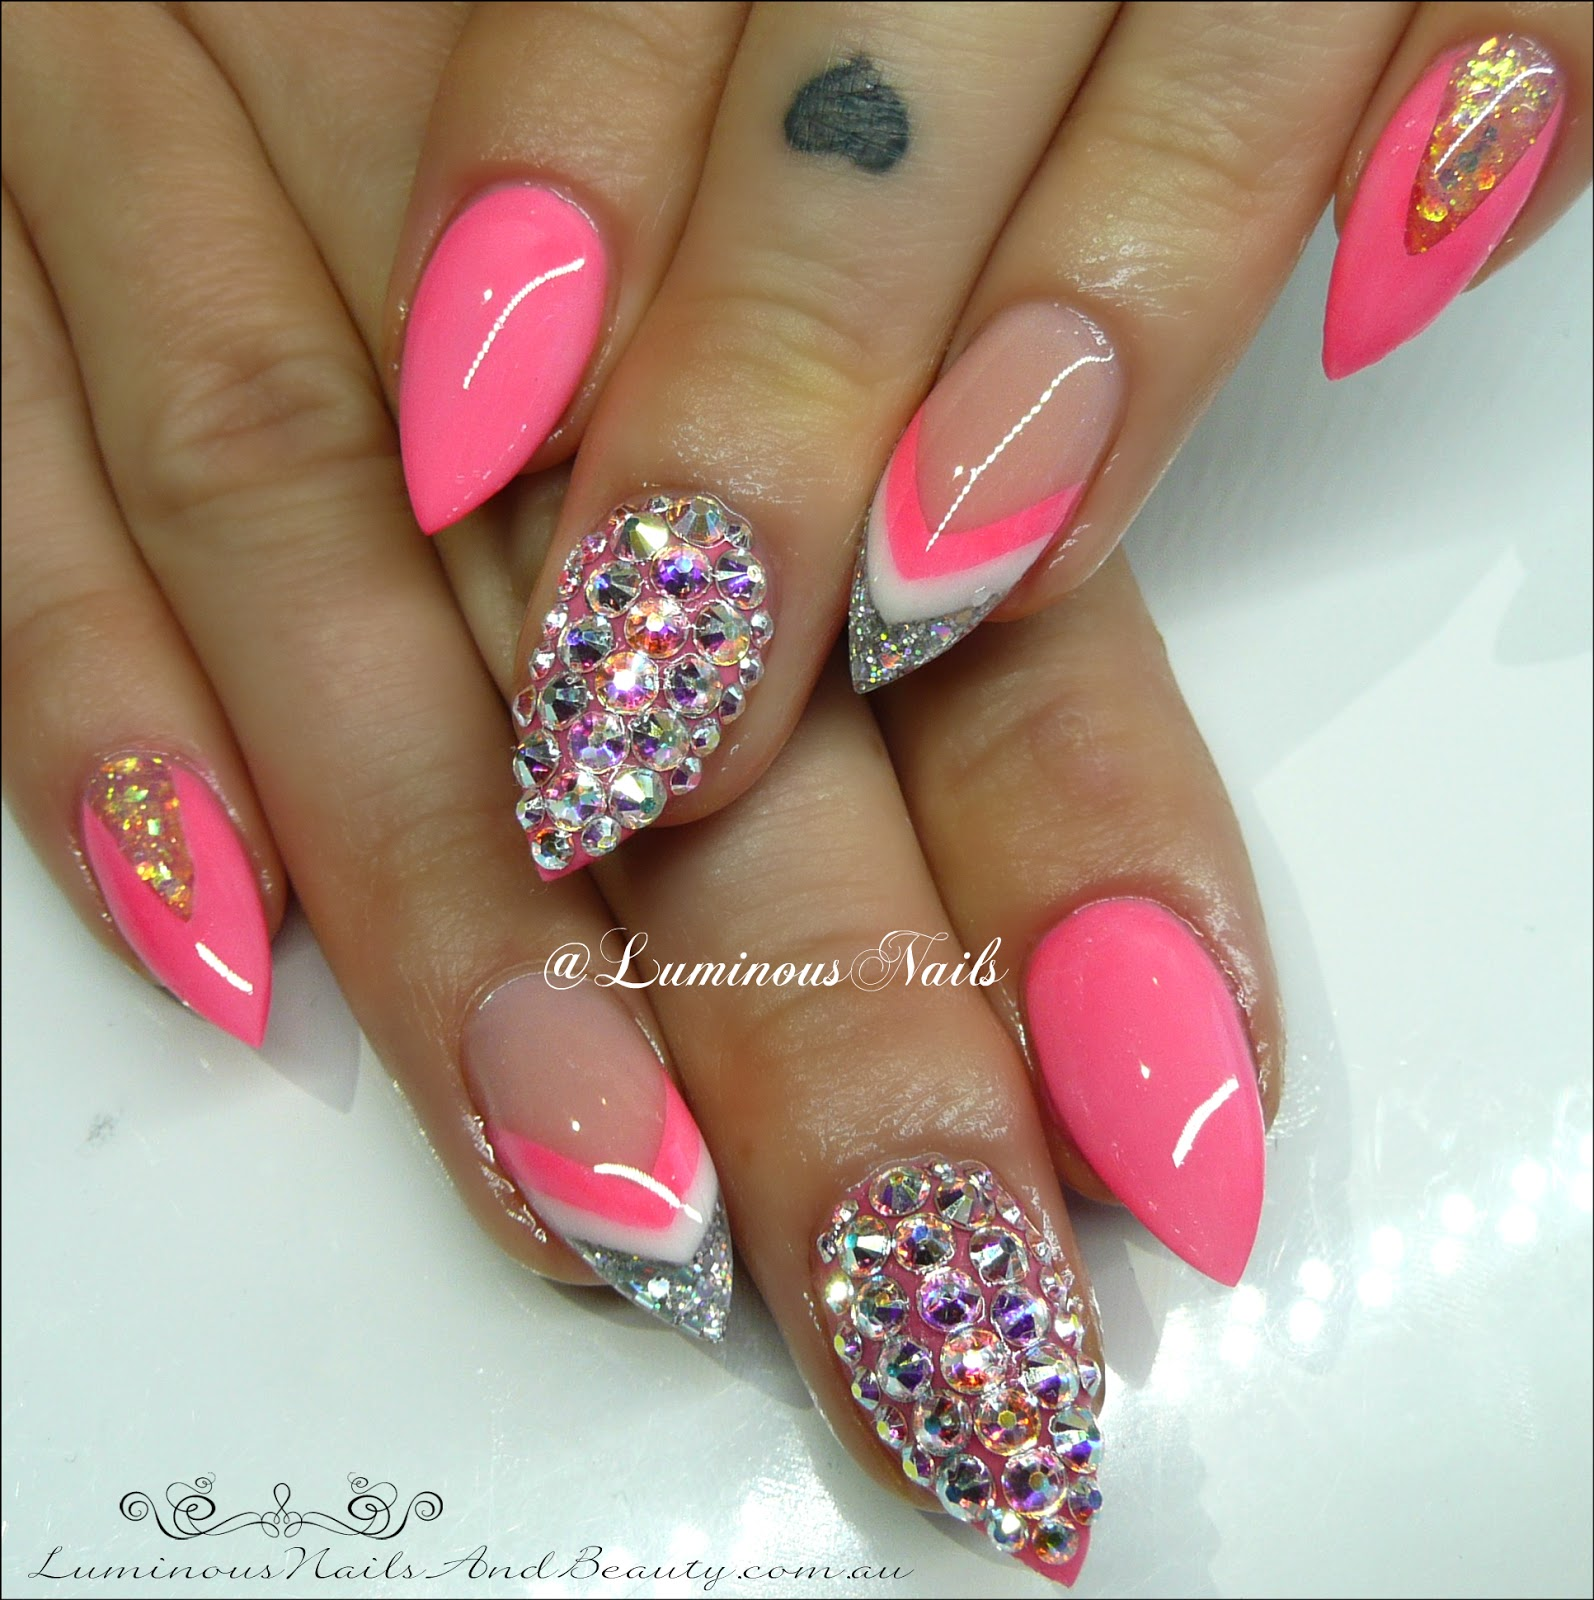 luminous nails: neon pink, white & silver acrylic nails with